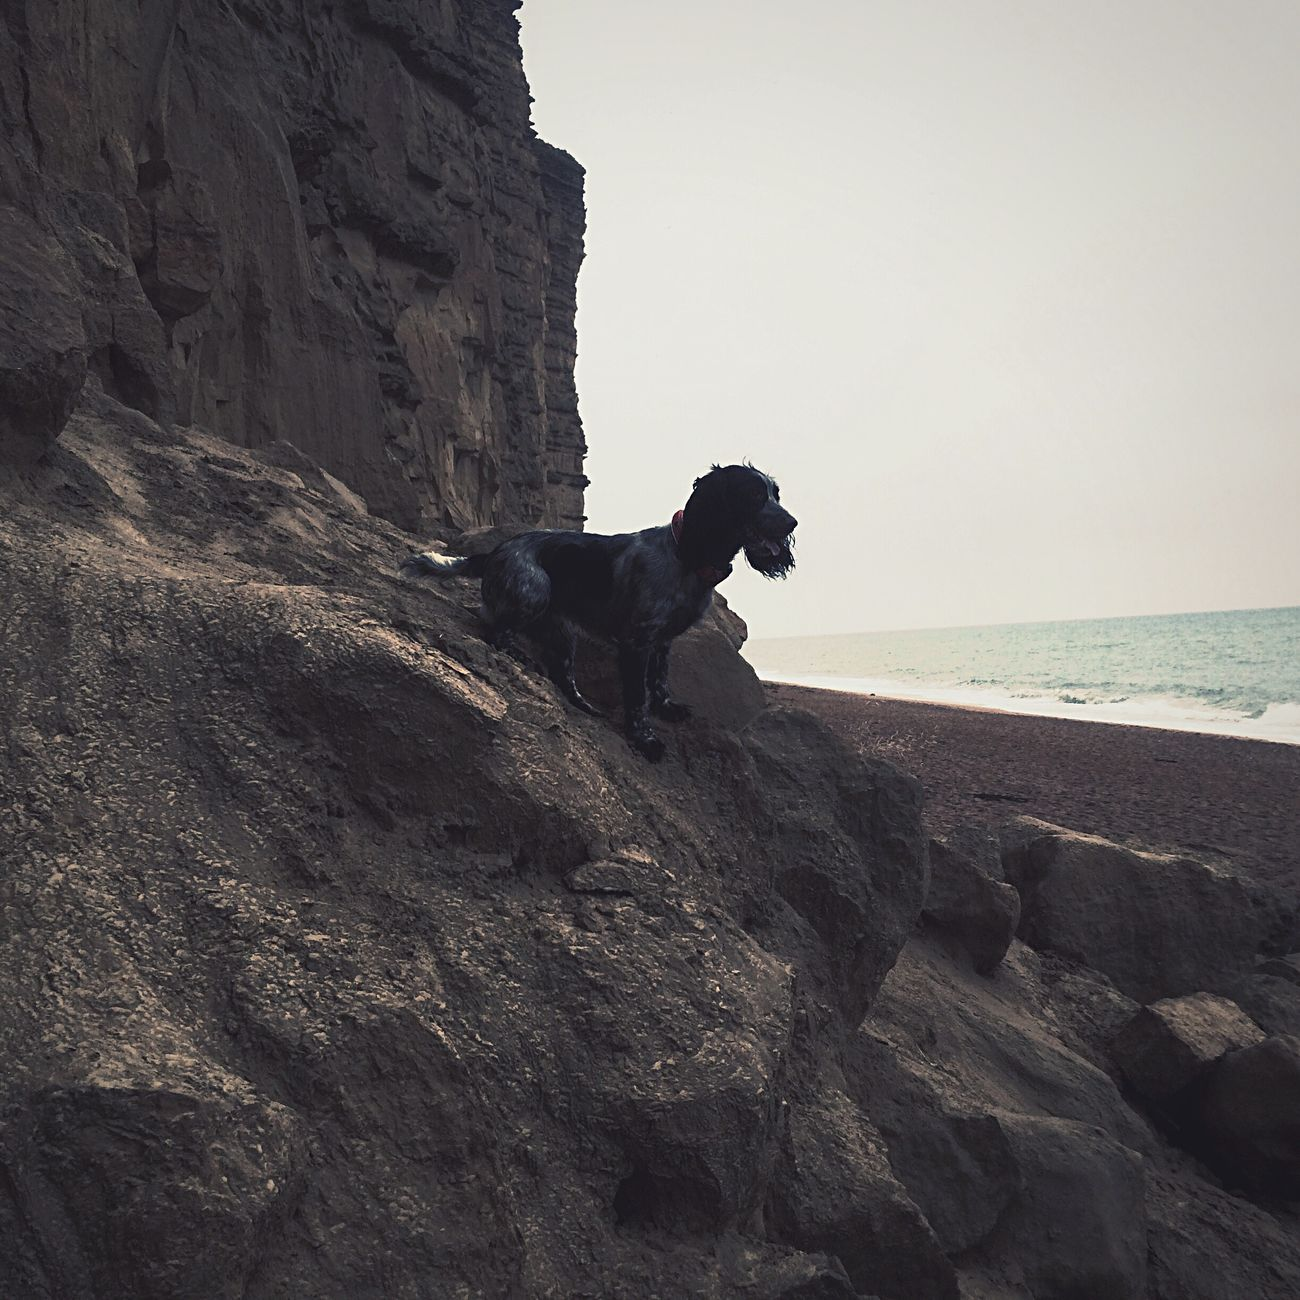 Molly looking out to sea while sitting on a dinosaur on the Jurassic coast